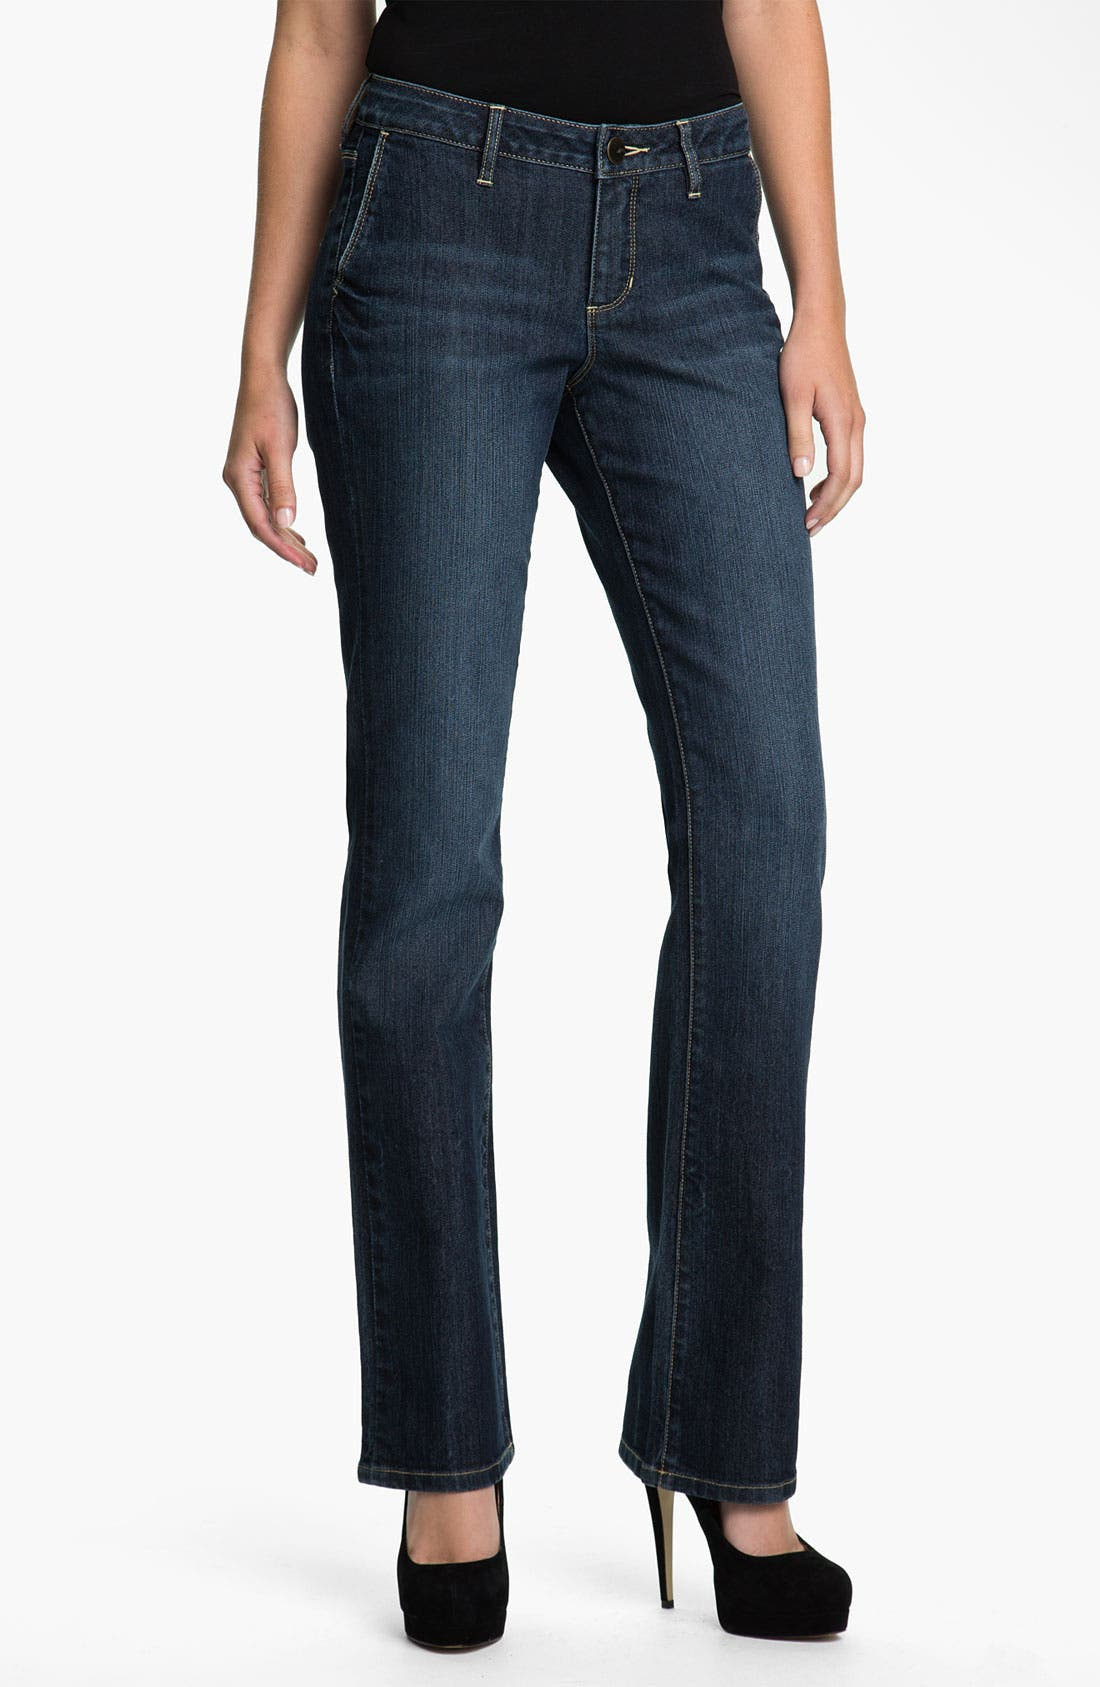 Alternate Image 1 Selected - Jag Jeans 'Virginia' Bootcut Jeans (Roswell)